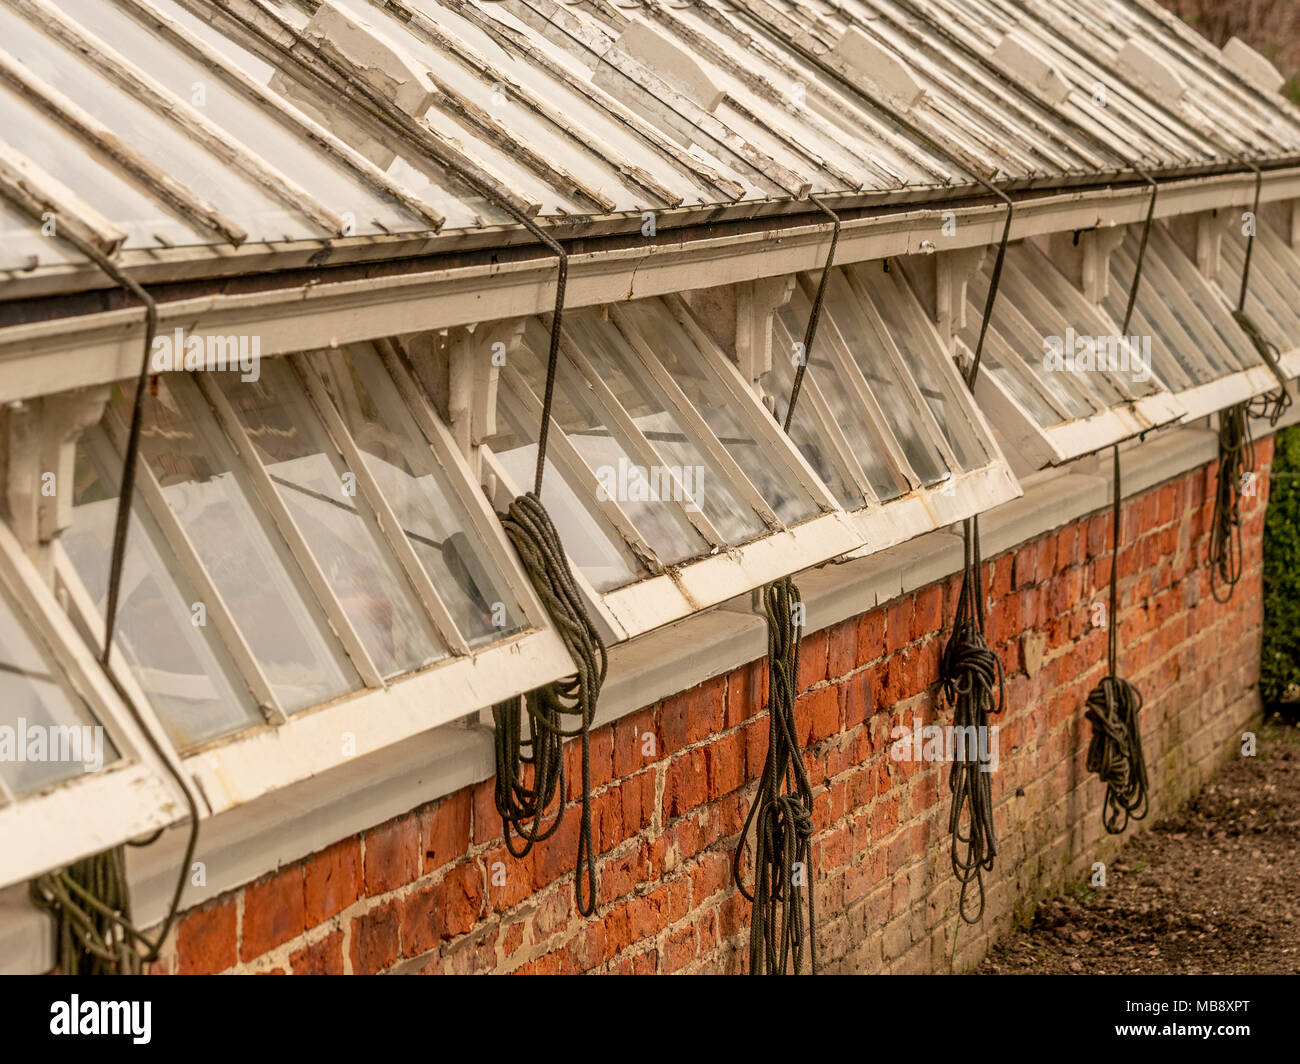 Greenhouse window ventilation to avoid overheating of plants - Stock Image